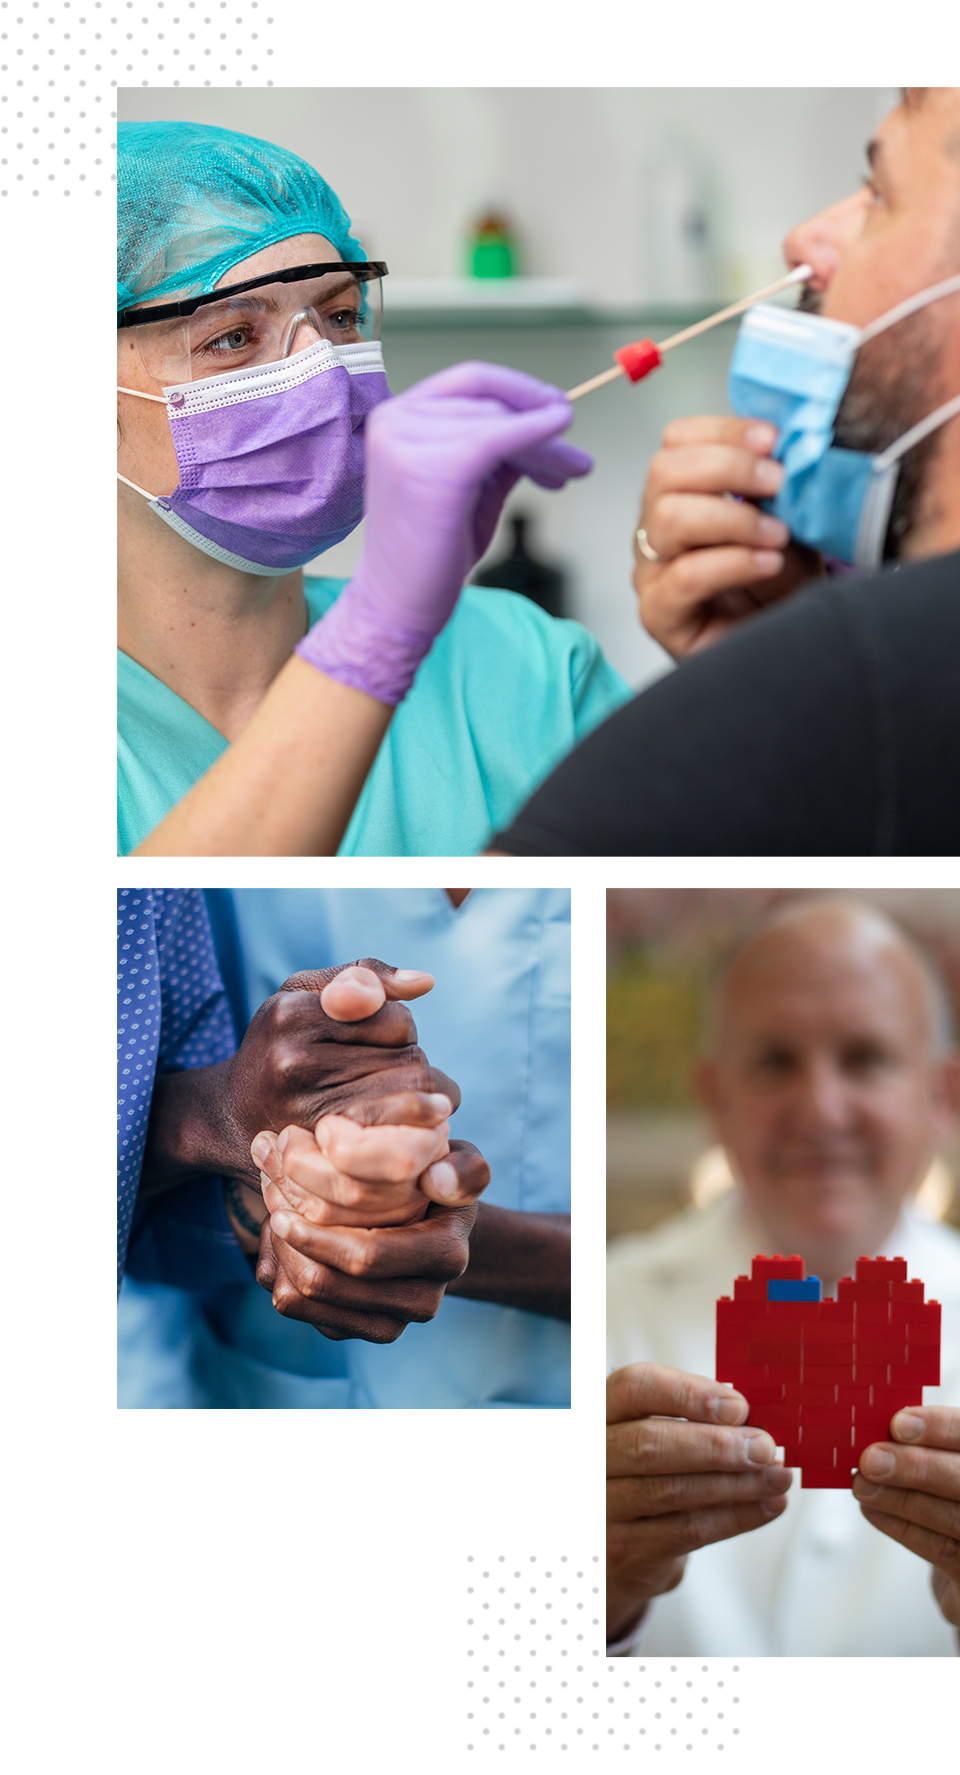 Collage of a health care worker conducting a nasal swab, two clasped hands and a man holding a heart made of Lego bricks.